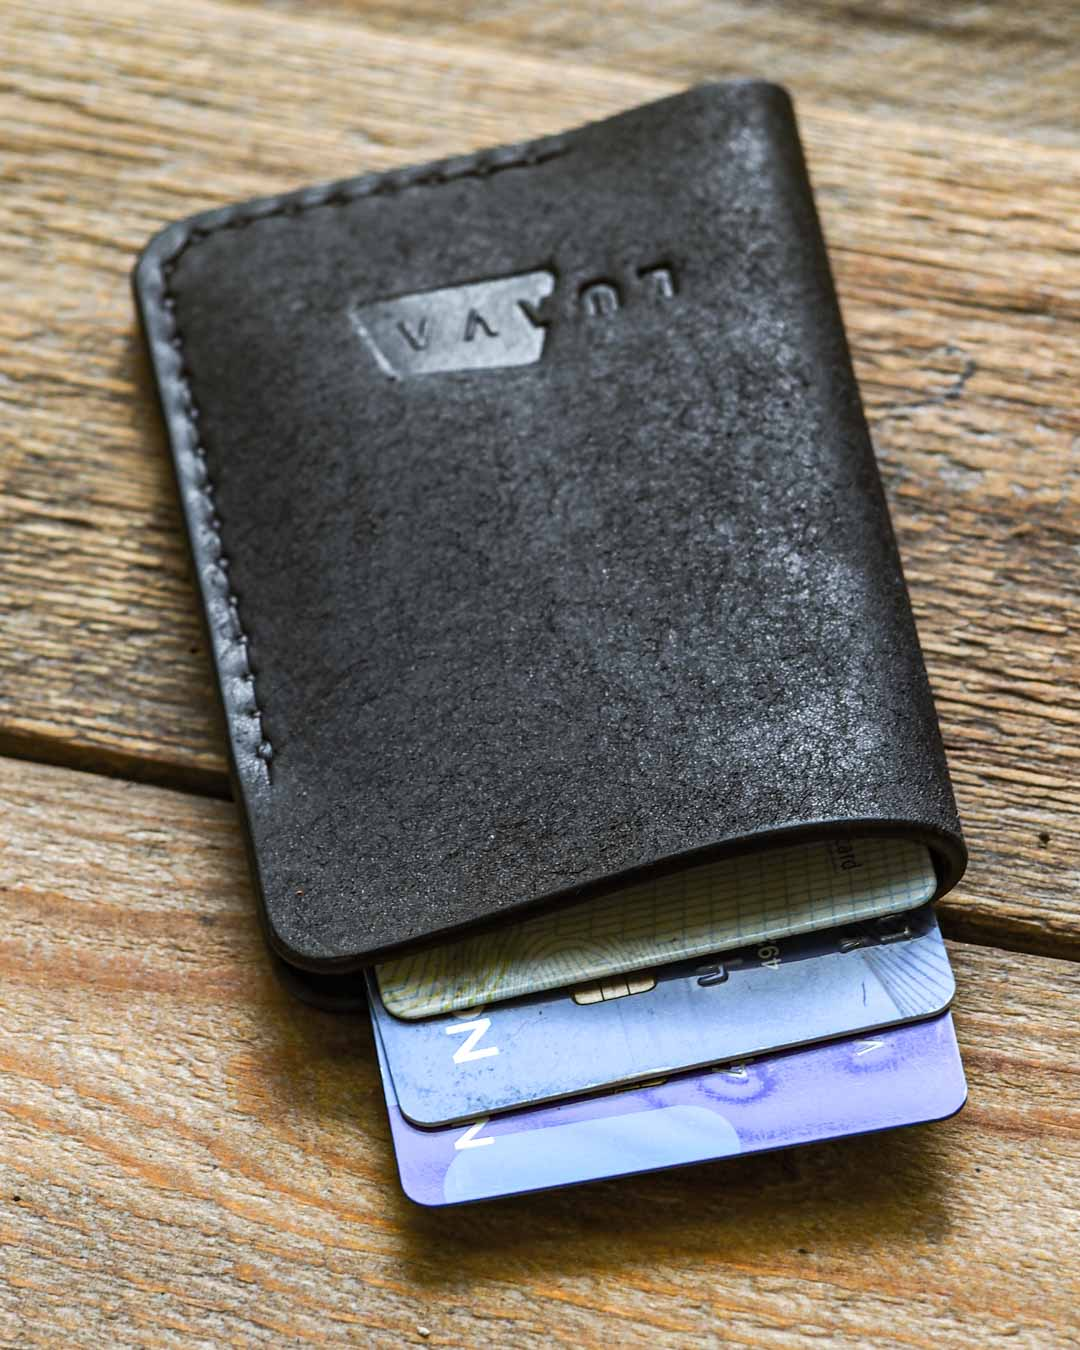 Luava leather card holder pueblo black wallet in use